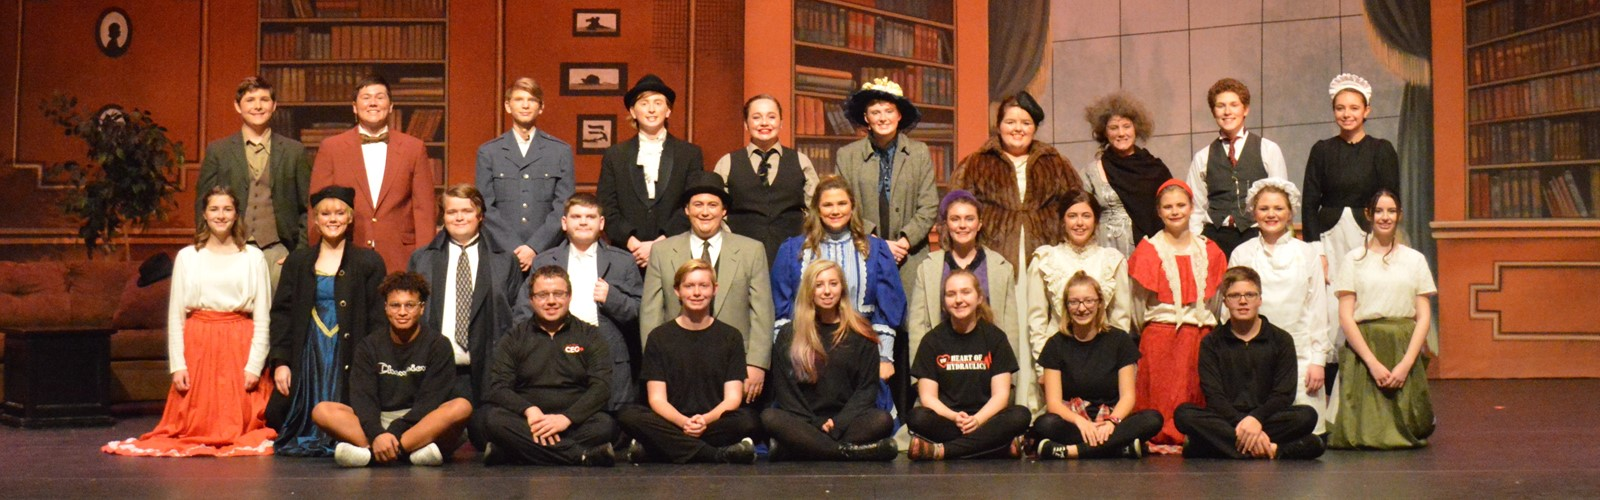 Cast and crew of Sherlock Holmes